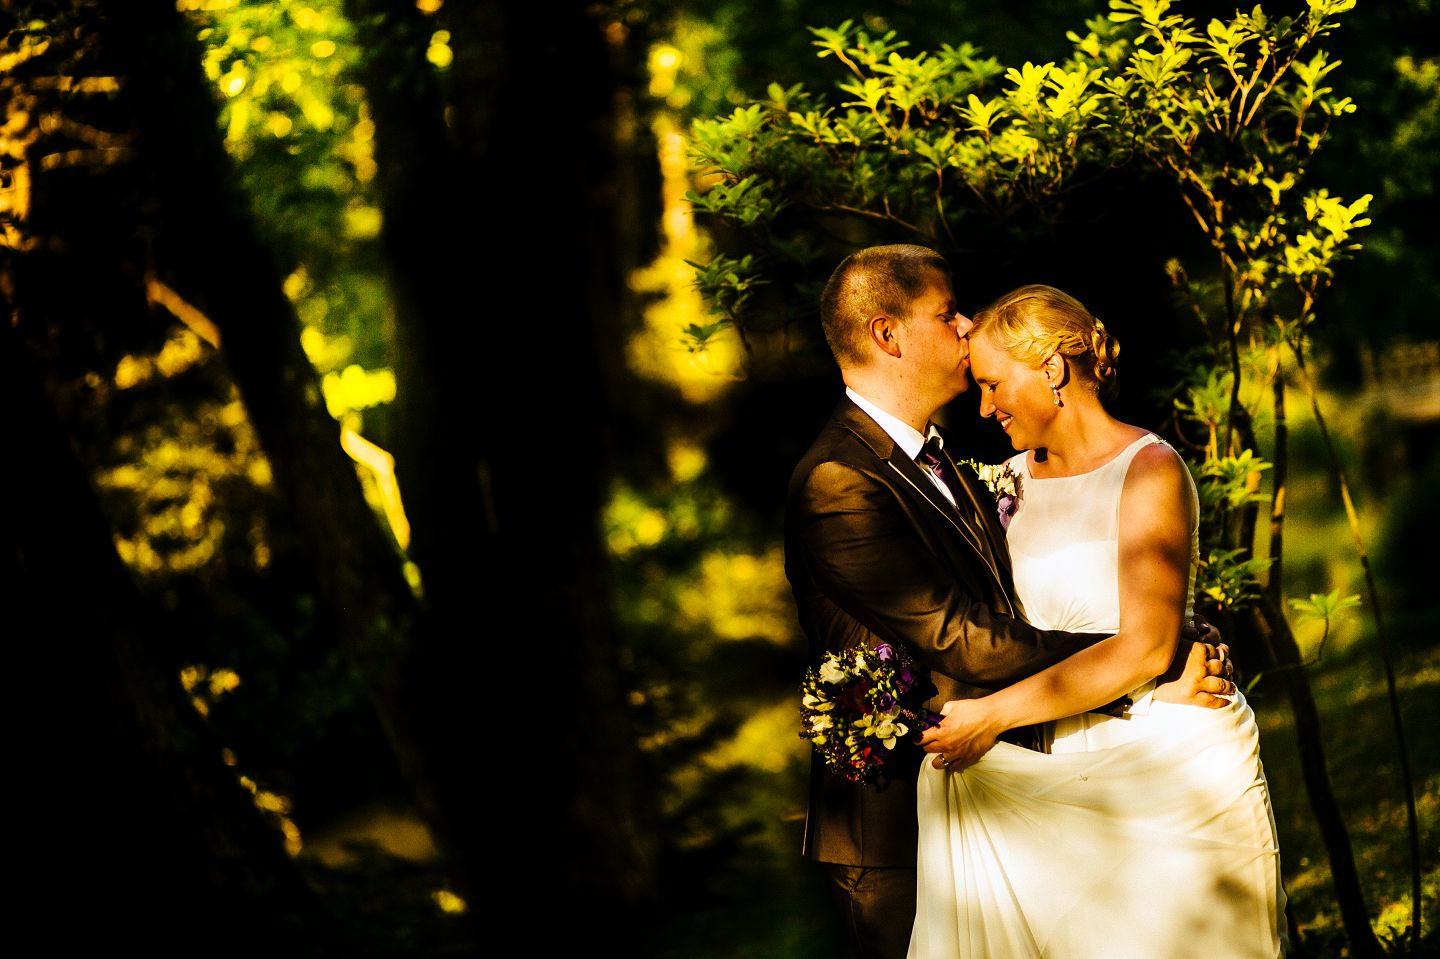 slovenia-brdo-wedding-katarina-filip (64)